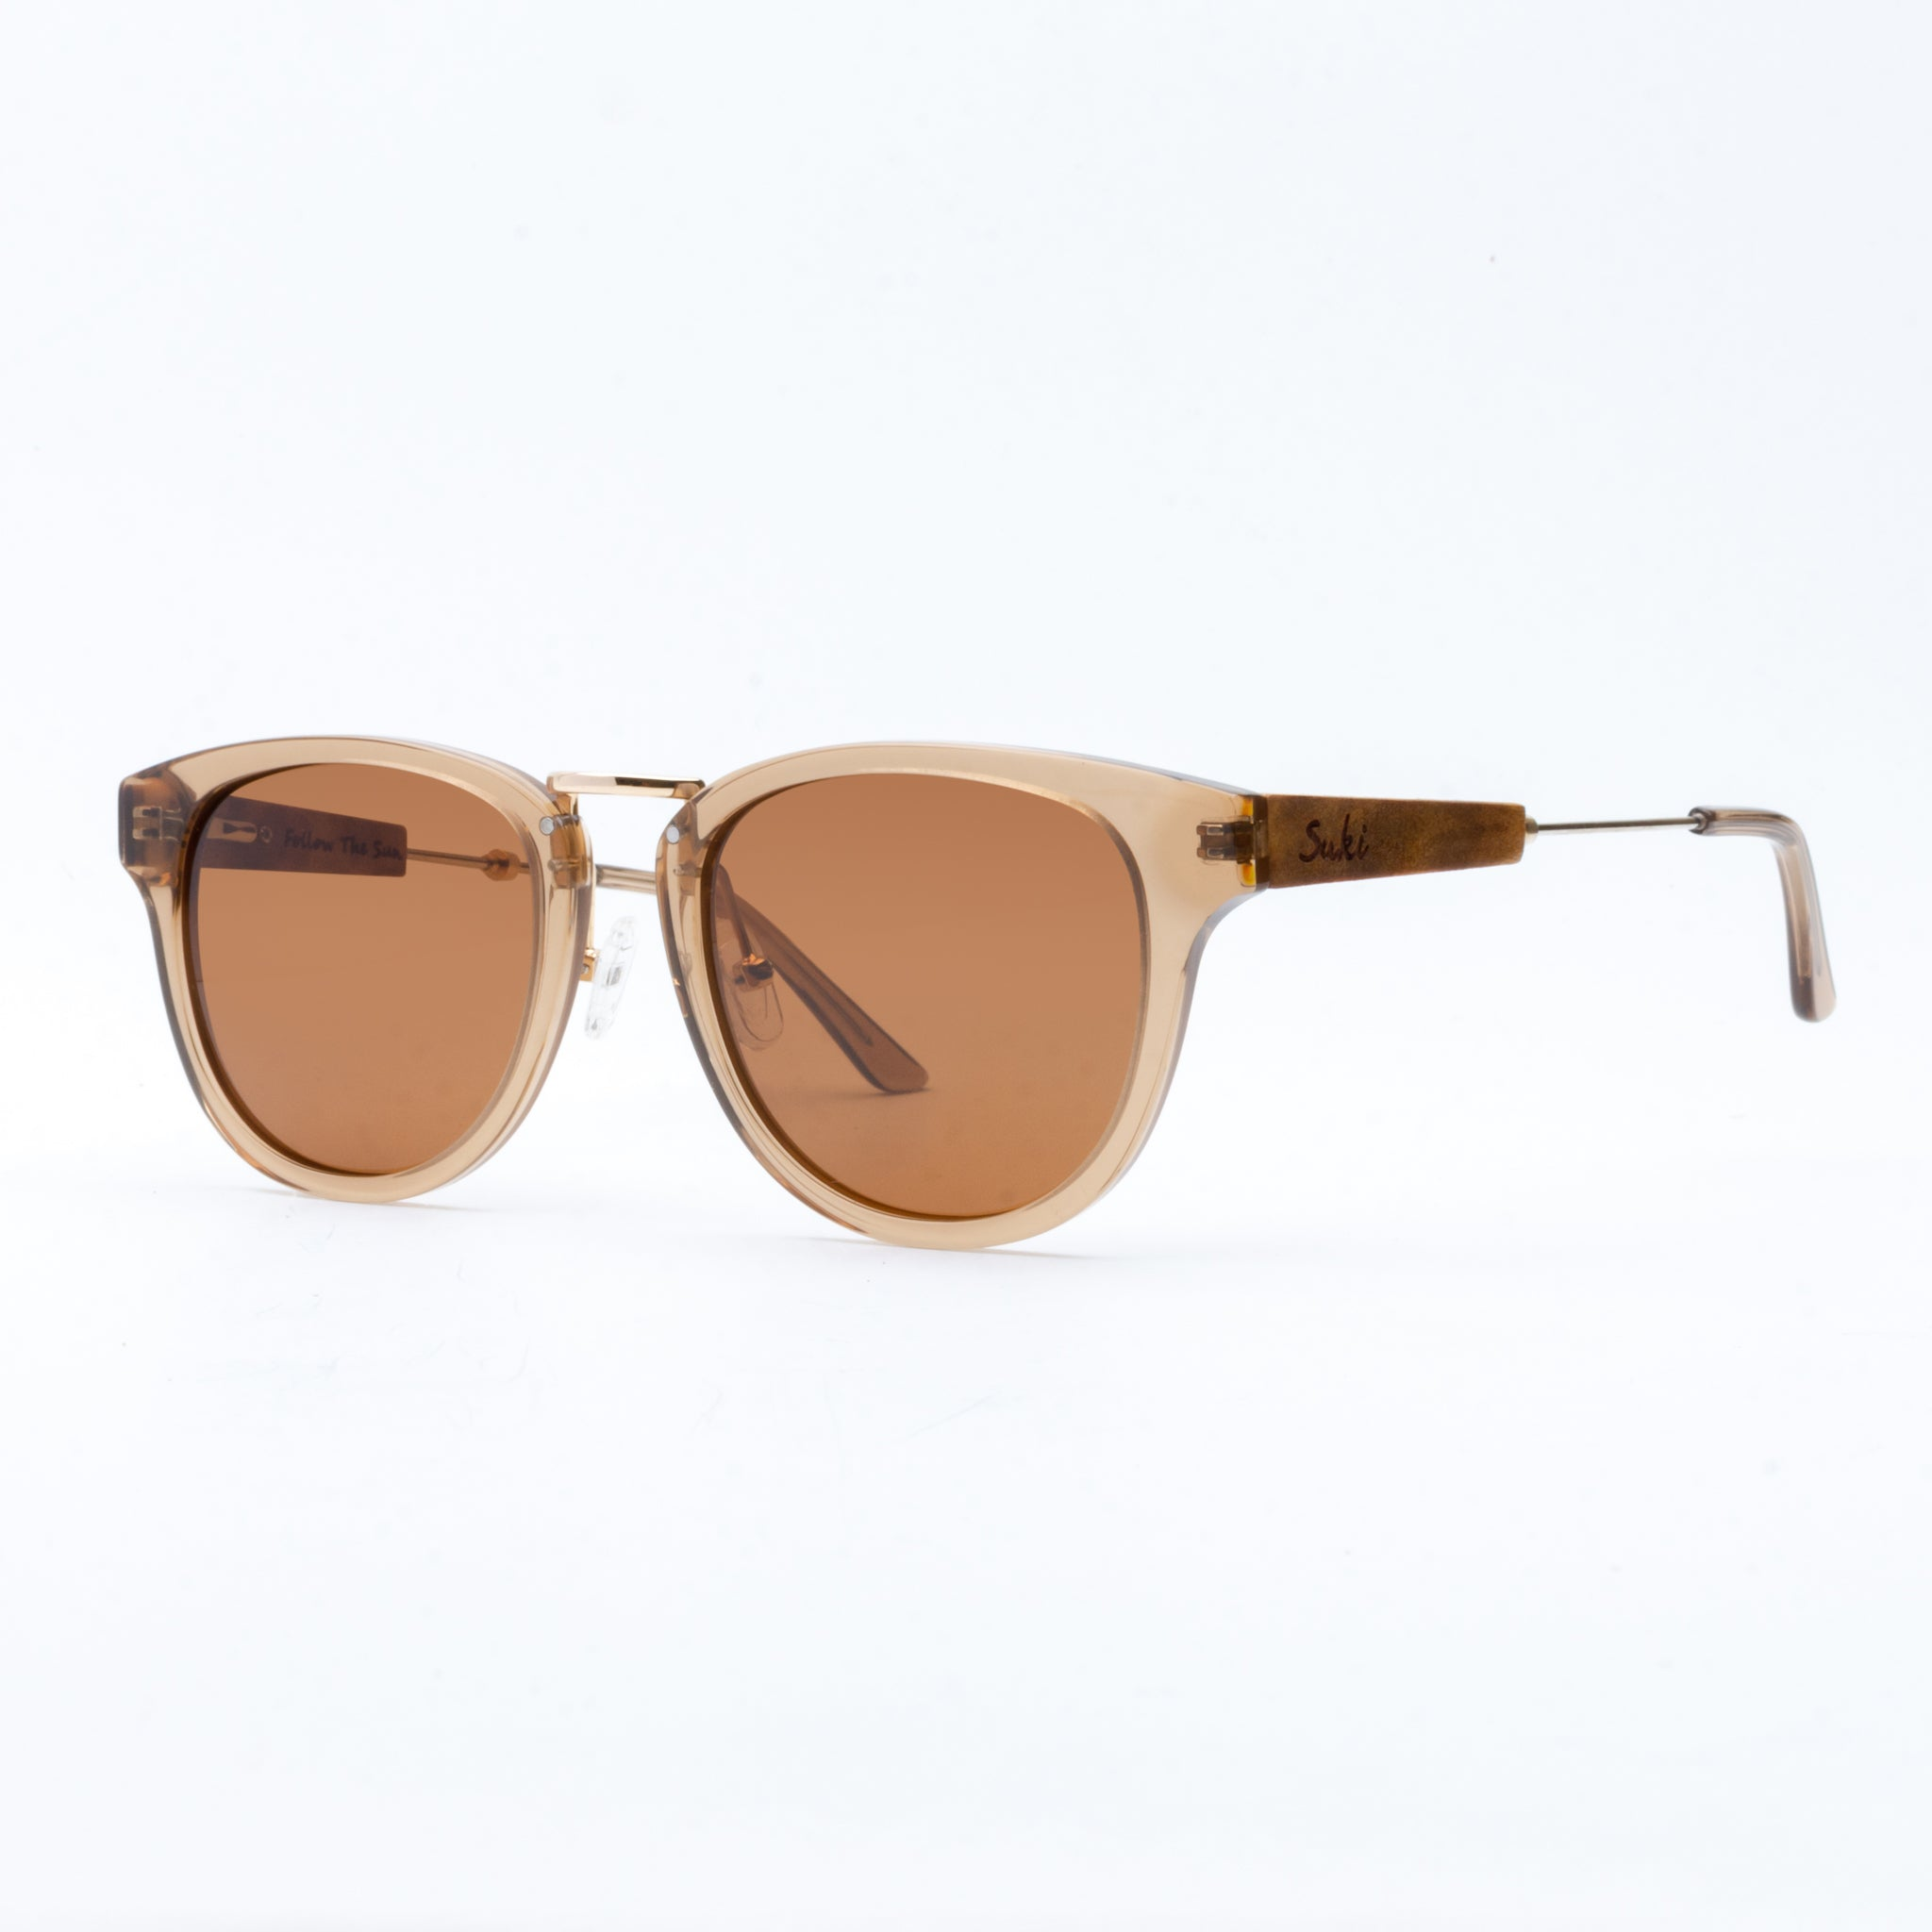 Wooden Sunglasses Kila Brown Suki